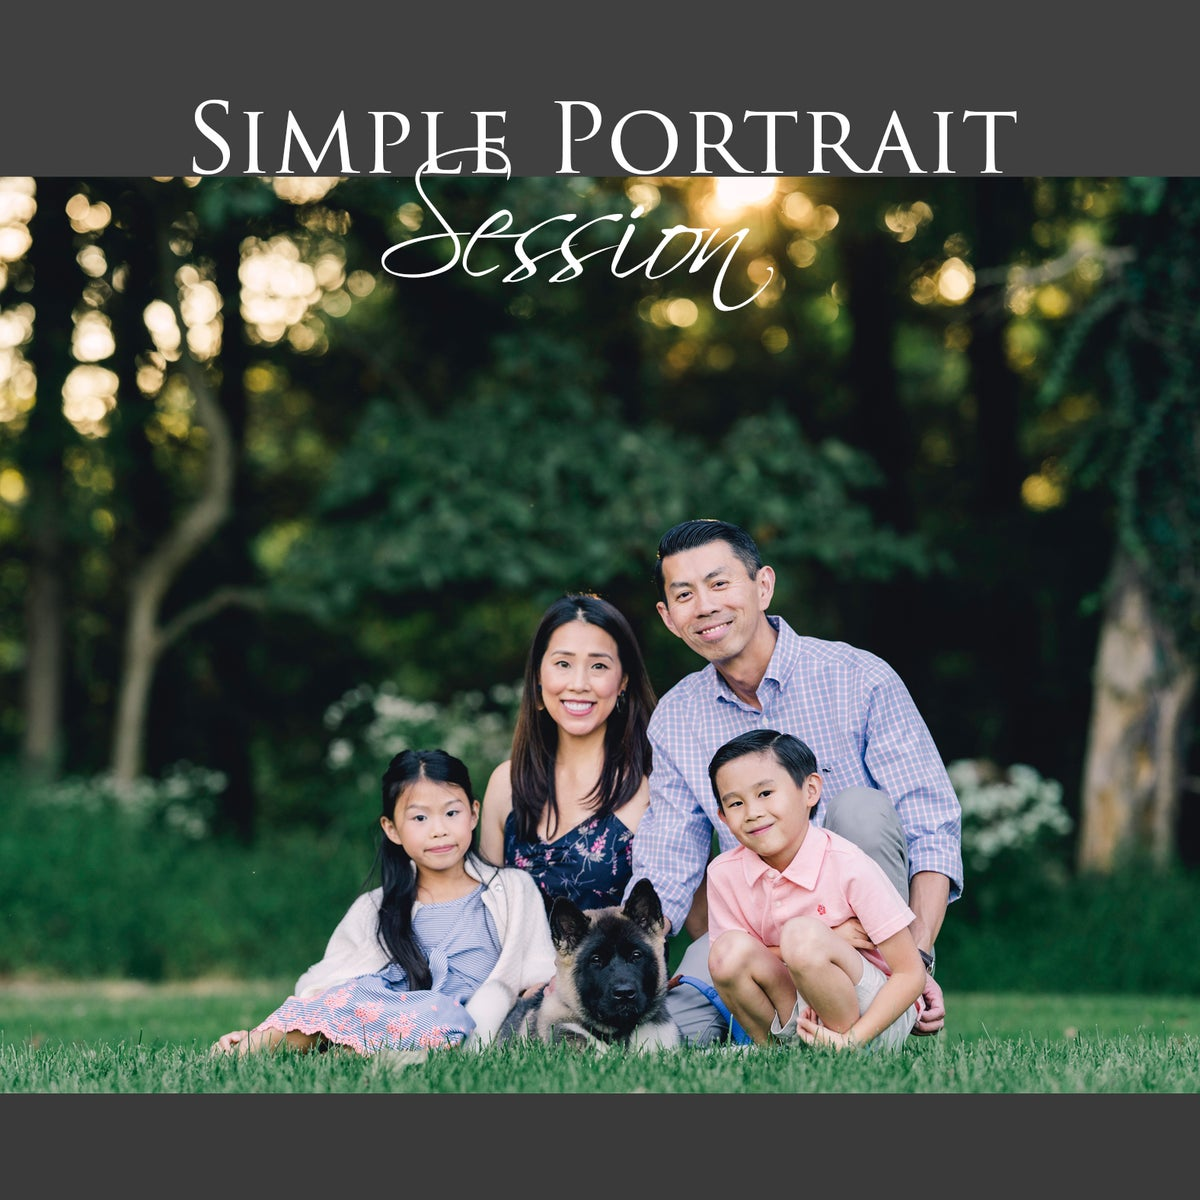 Image of Simple Portrait Session